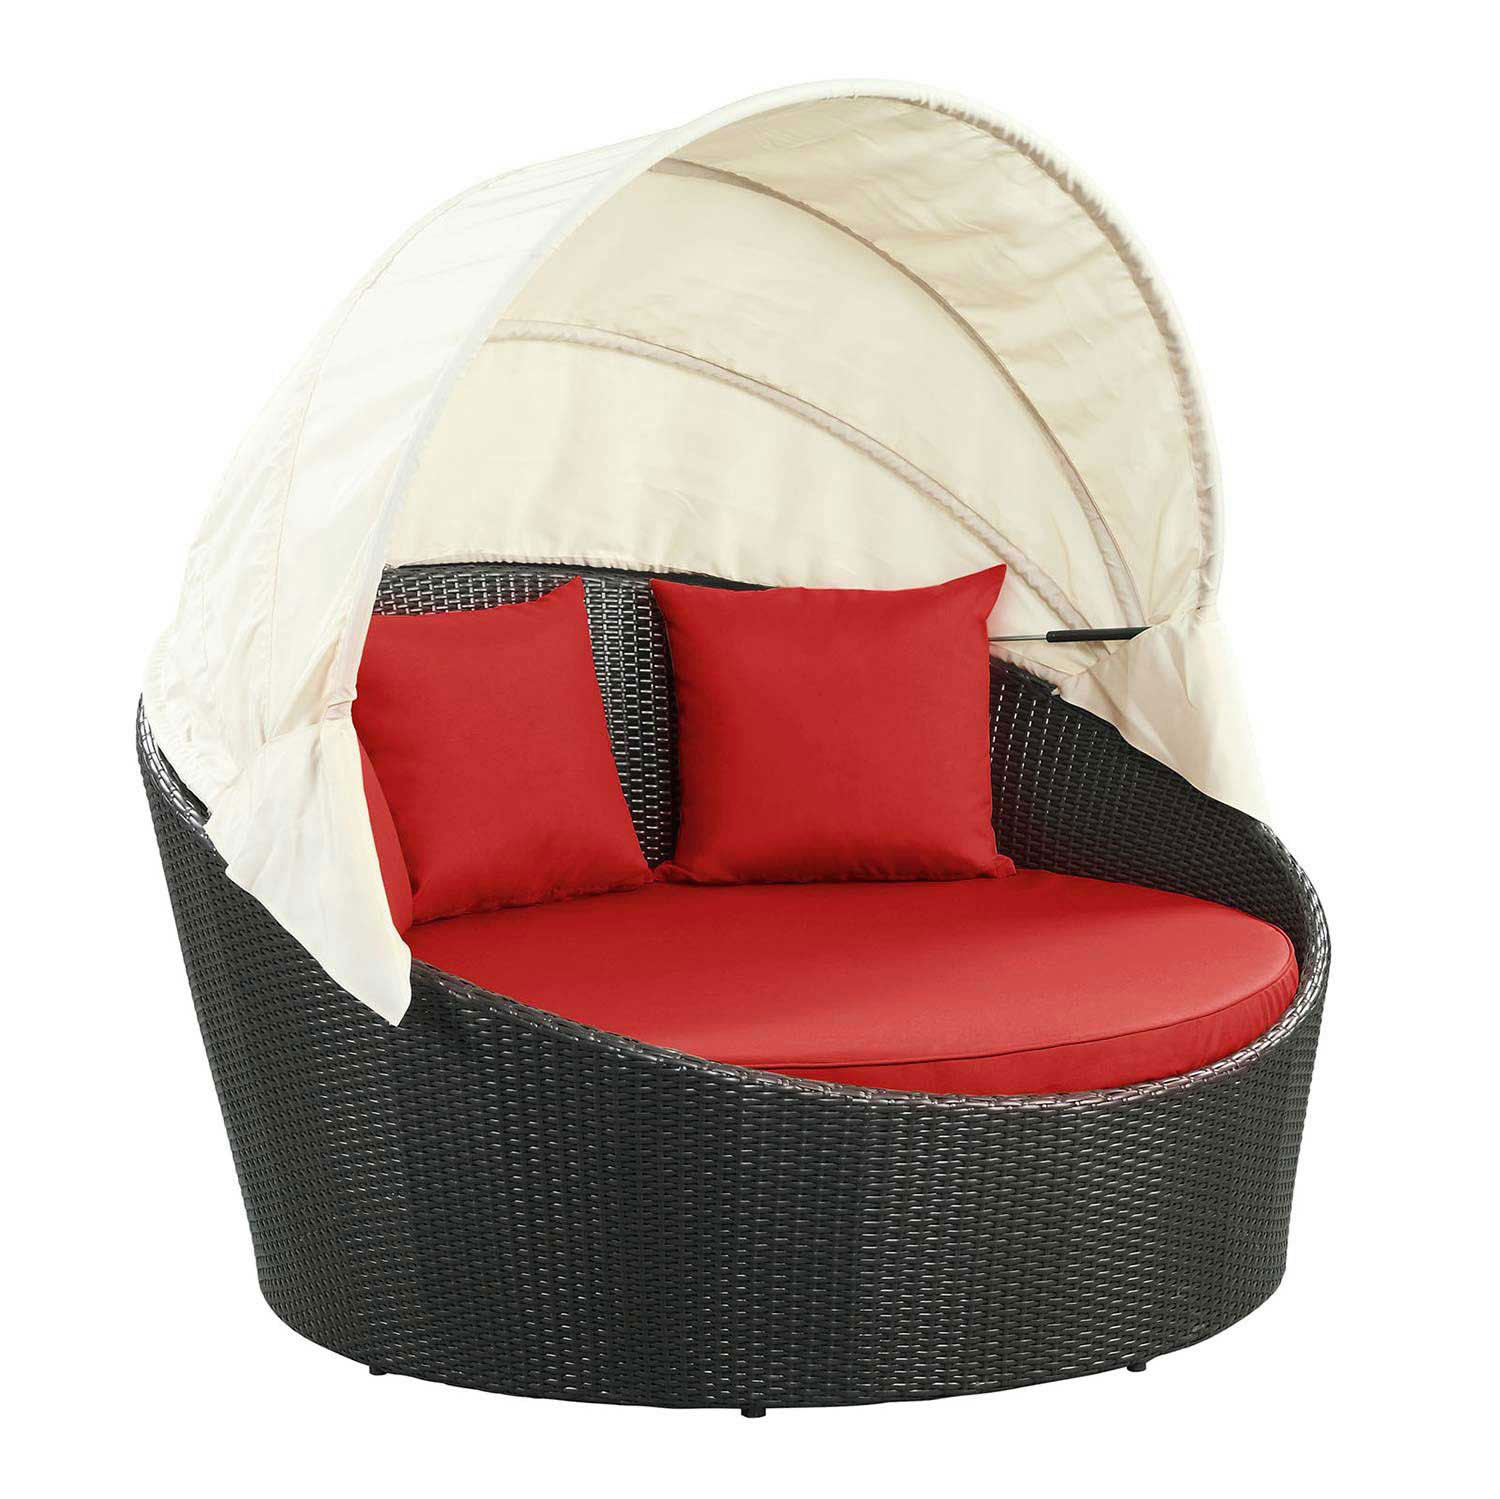 Modway Siesta Canopy Outdoor Patio Daybed - Espresso Red